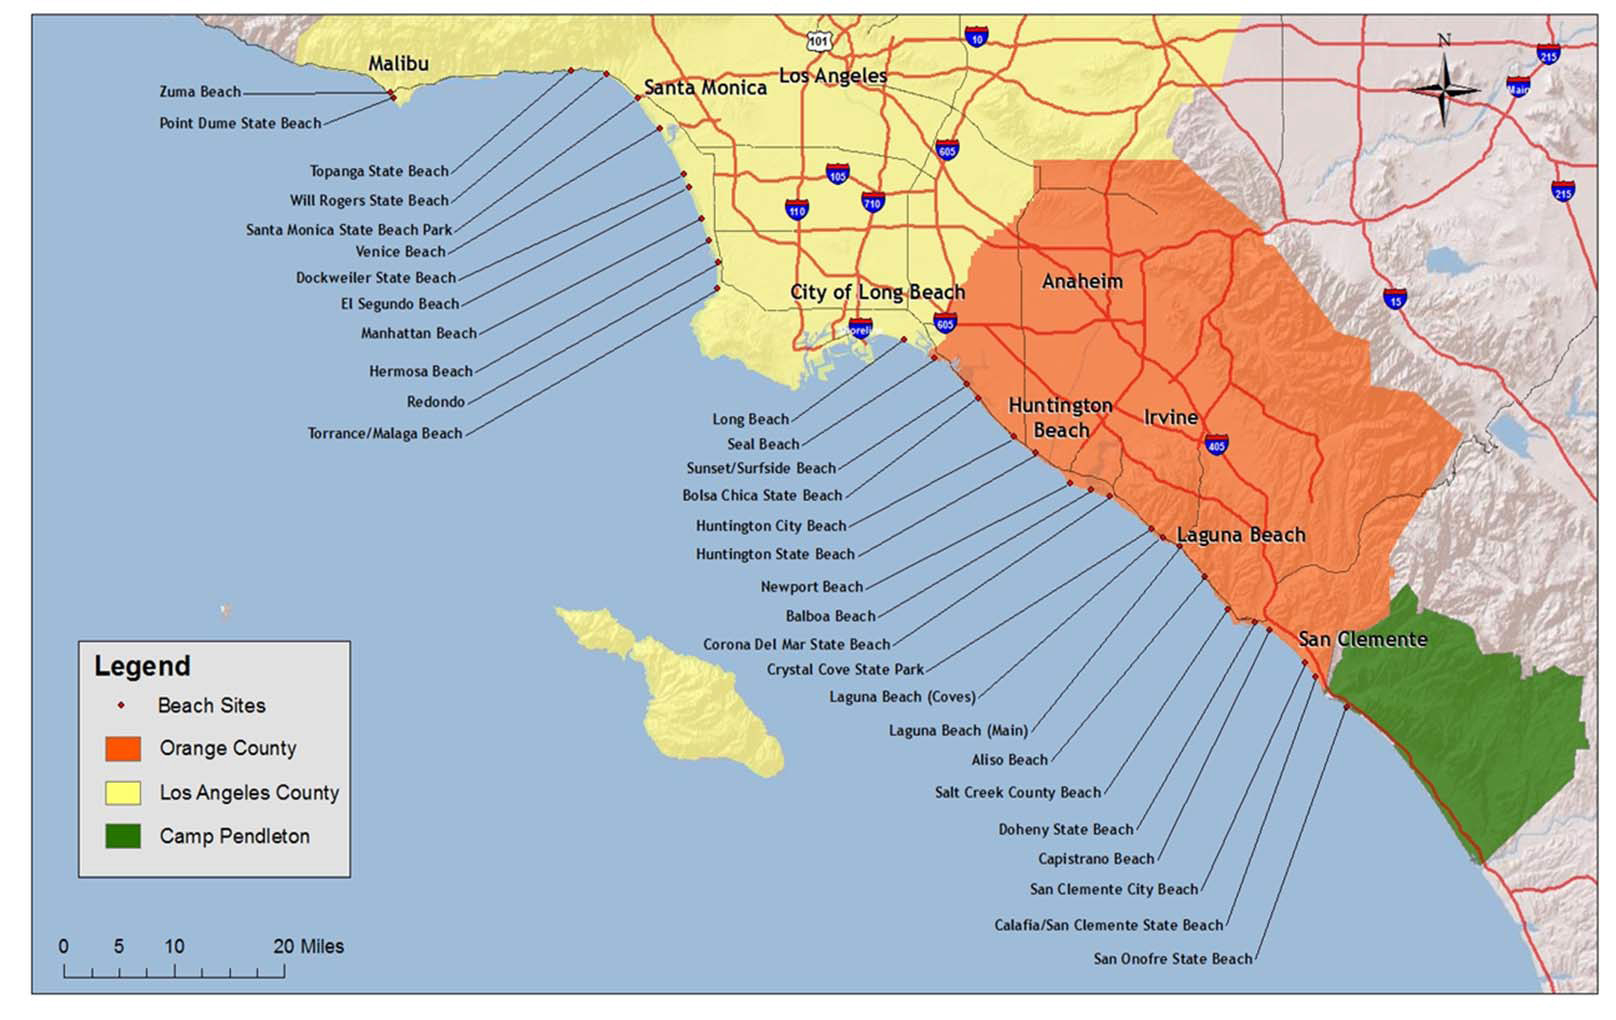 Southern California Coastline Map - Klipy - Map Of Southern California Beach Cities